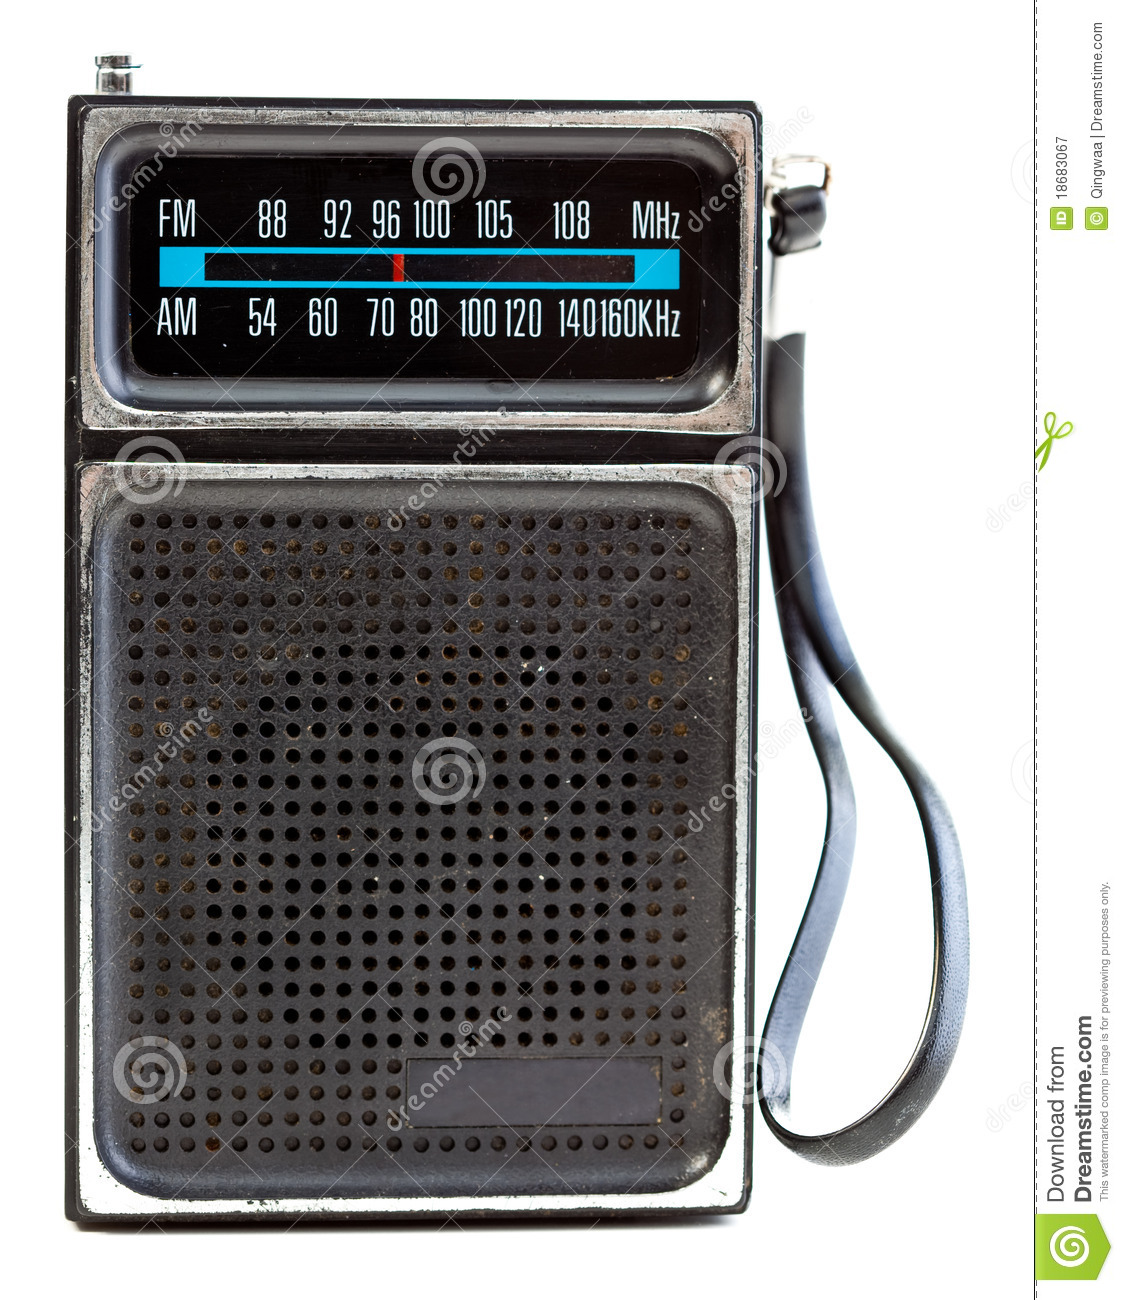 Royalty Free Stock Photography Vintage Black Portable Transistor Radio Isolated Image18683067 on vintage transistor radios